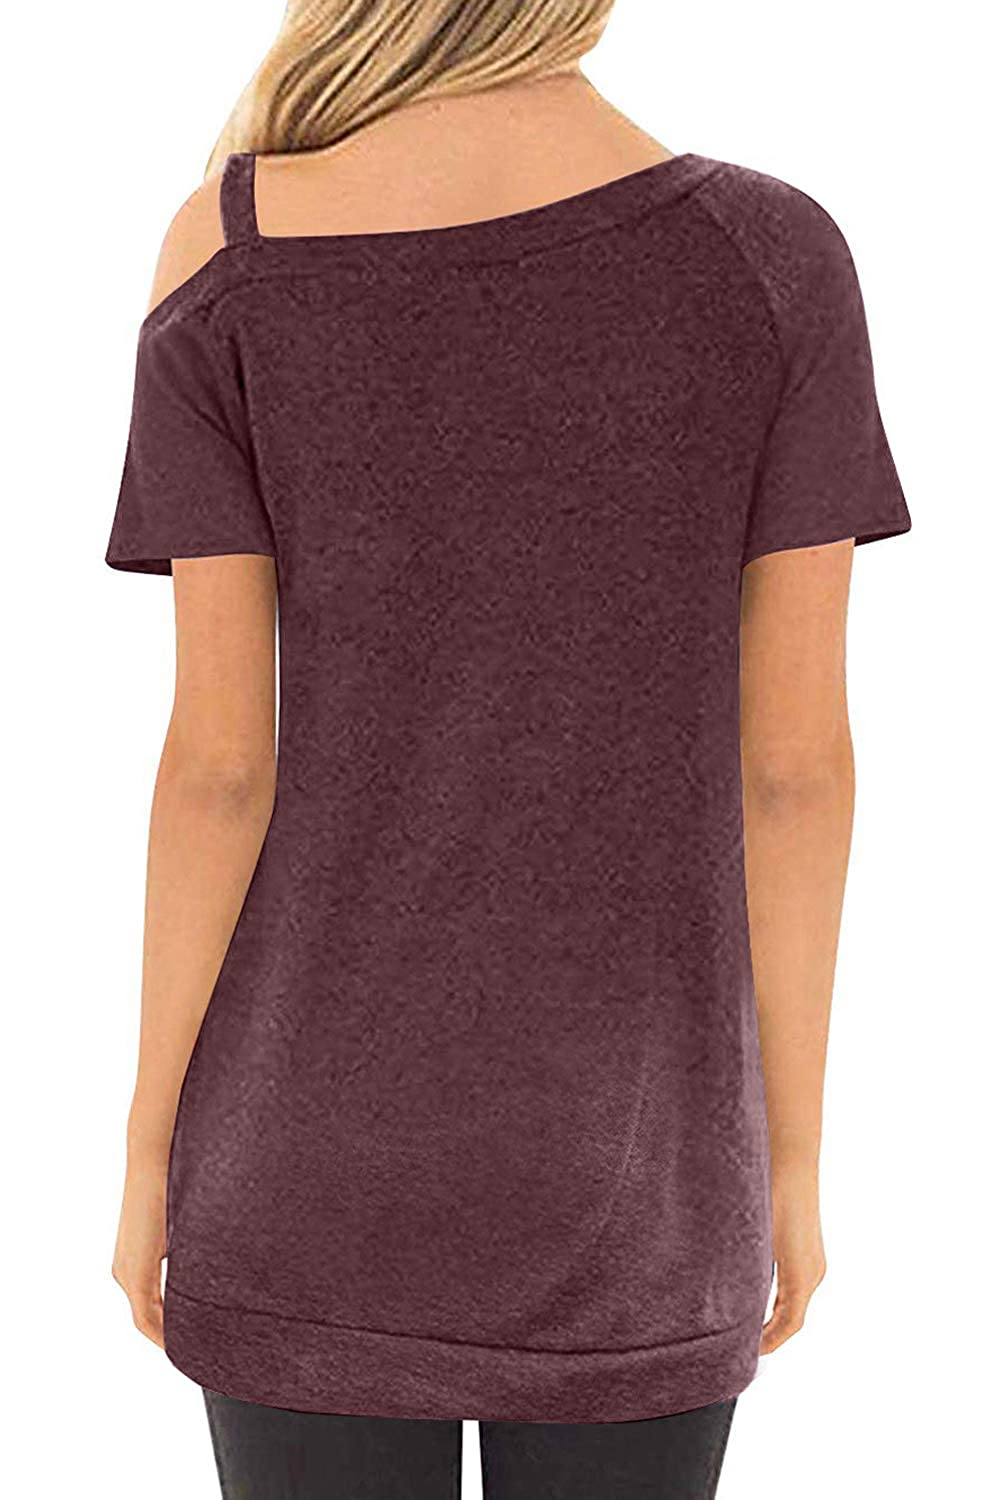 CILKOO Womens Casual Cold Sleeve Side Button Tunic Loose T Shirt Blouse Tops S-XXL